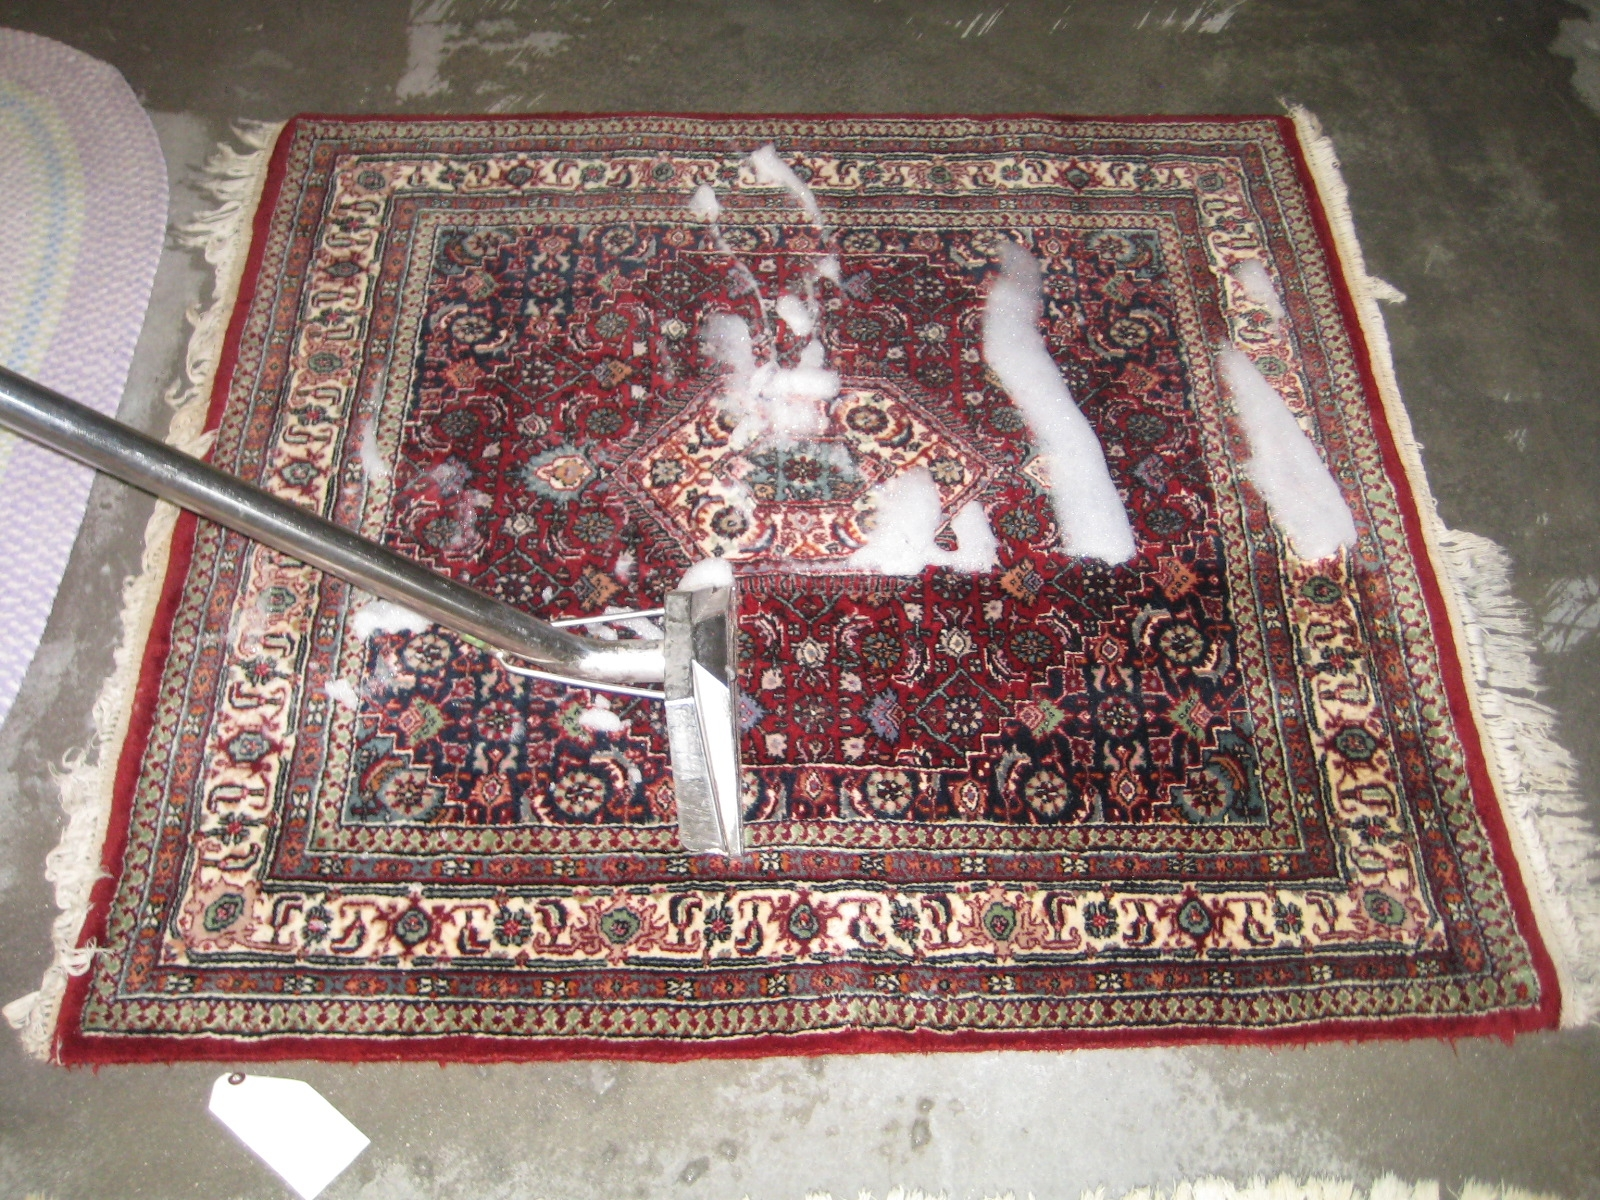 Professional Hand Wash Rug Cleaning And Area Dry